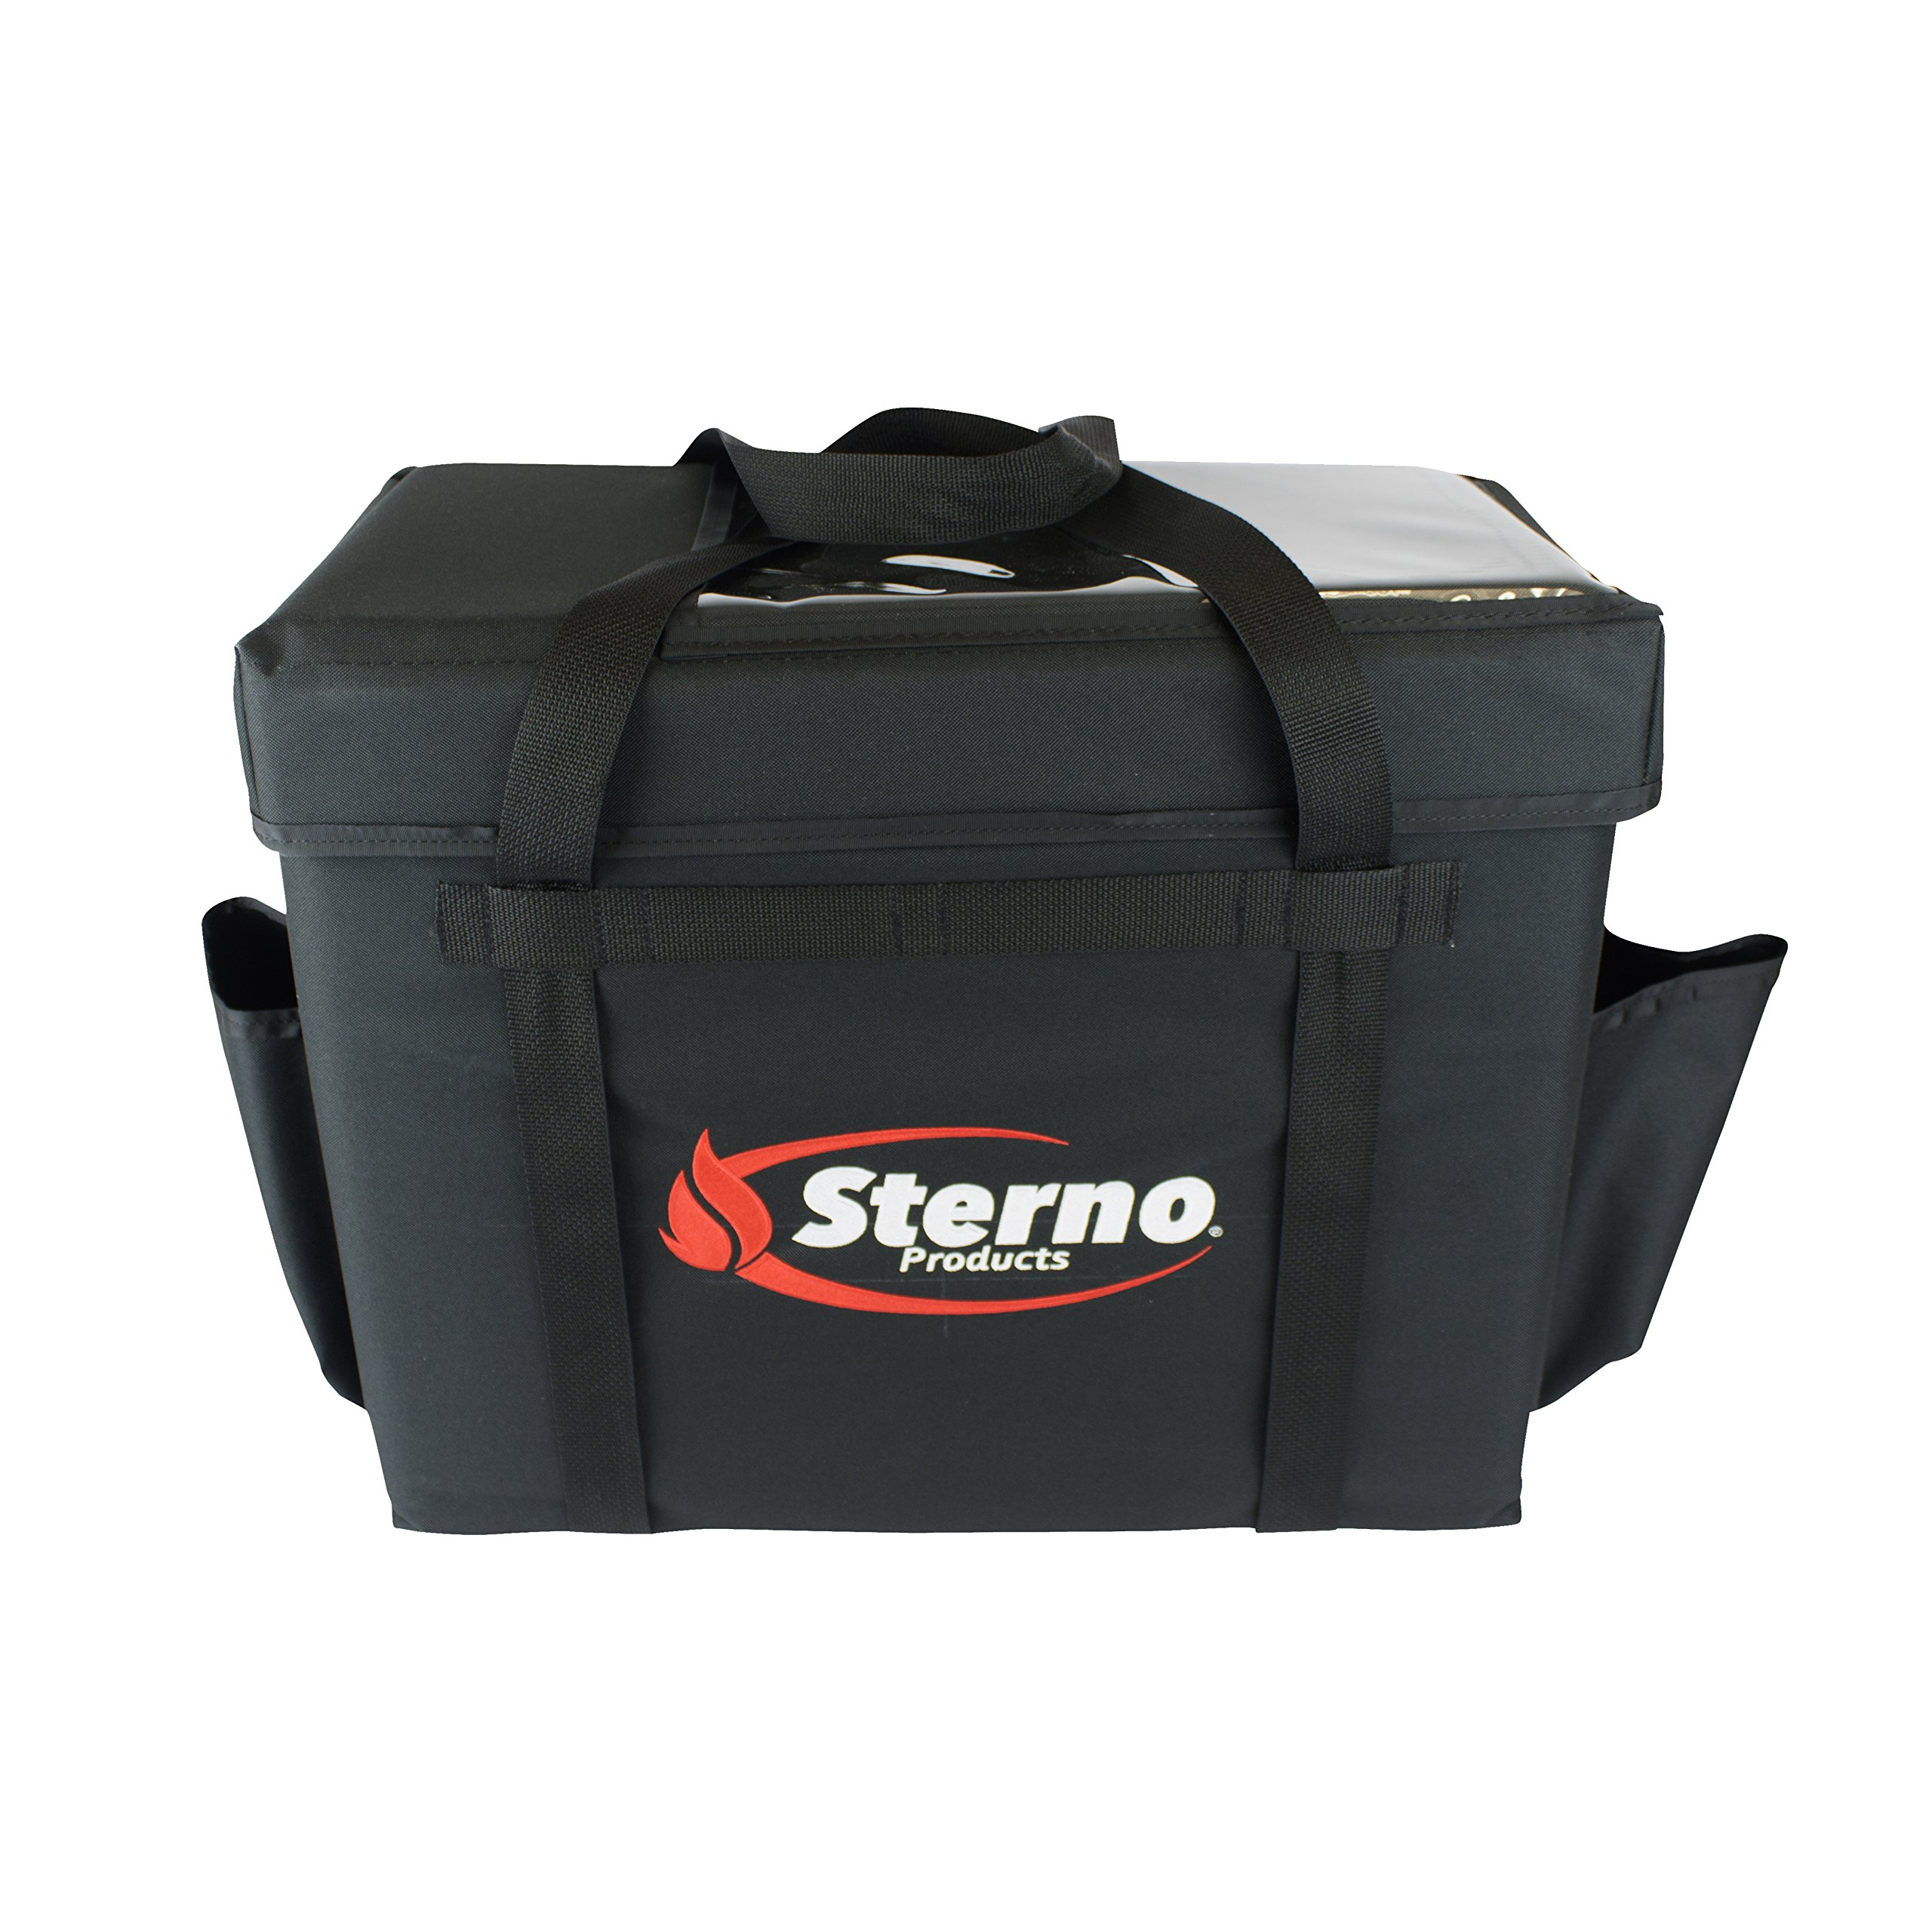 Sterno Delivery 70530 Insulated Food Carrier Delivery Deluxe - XL